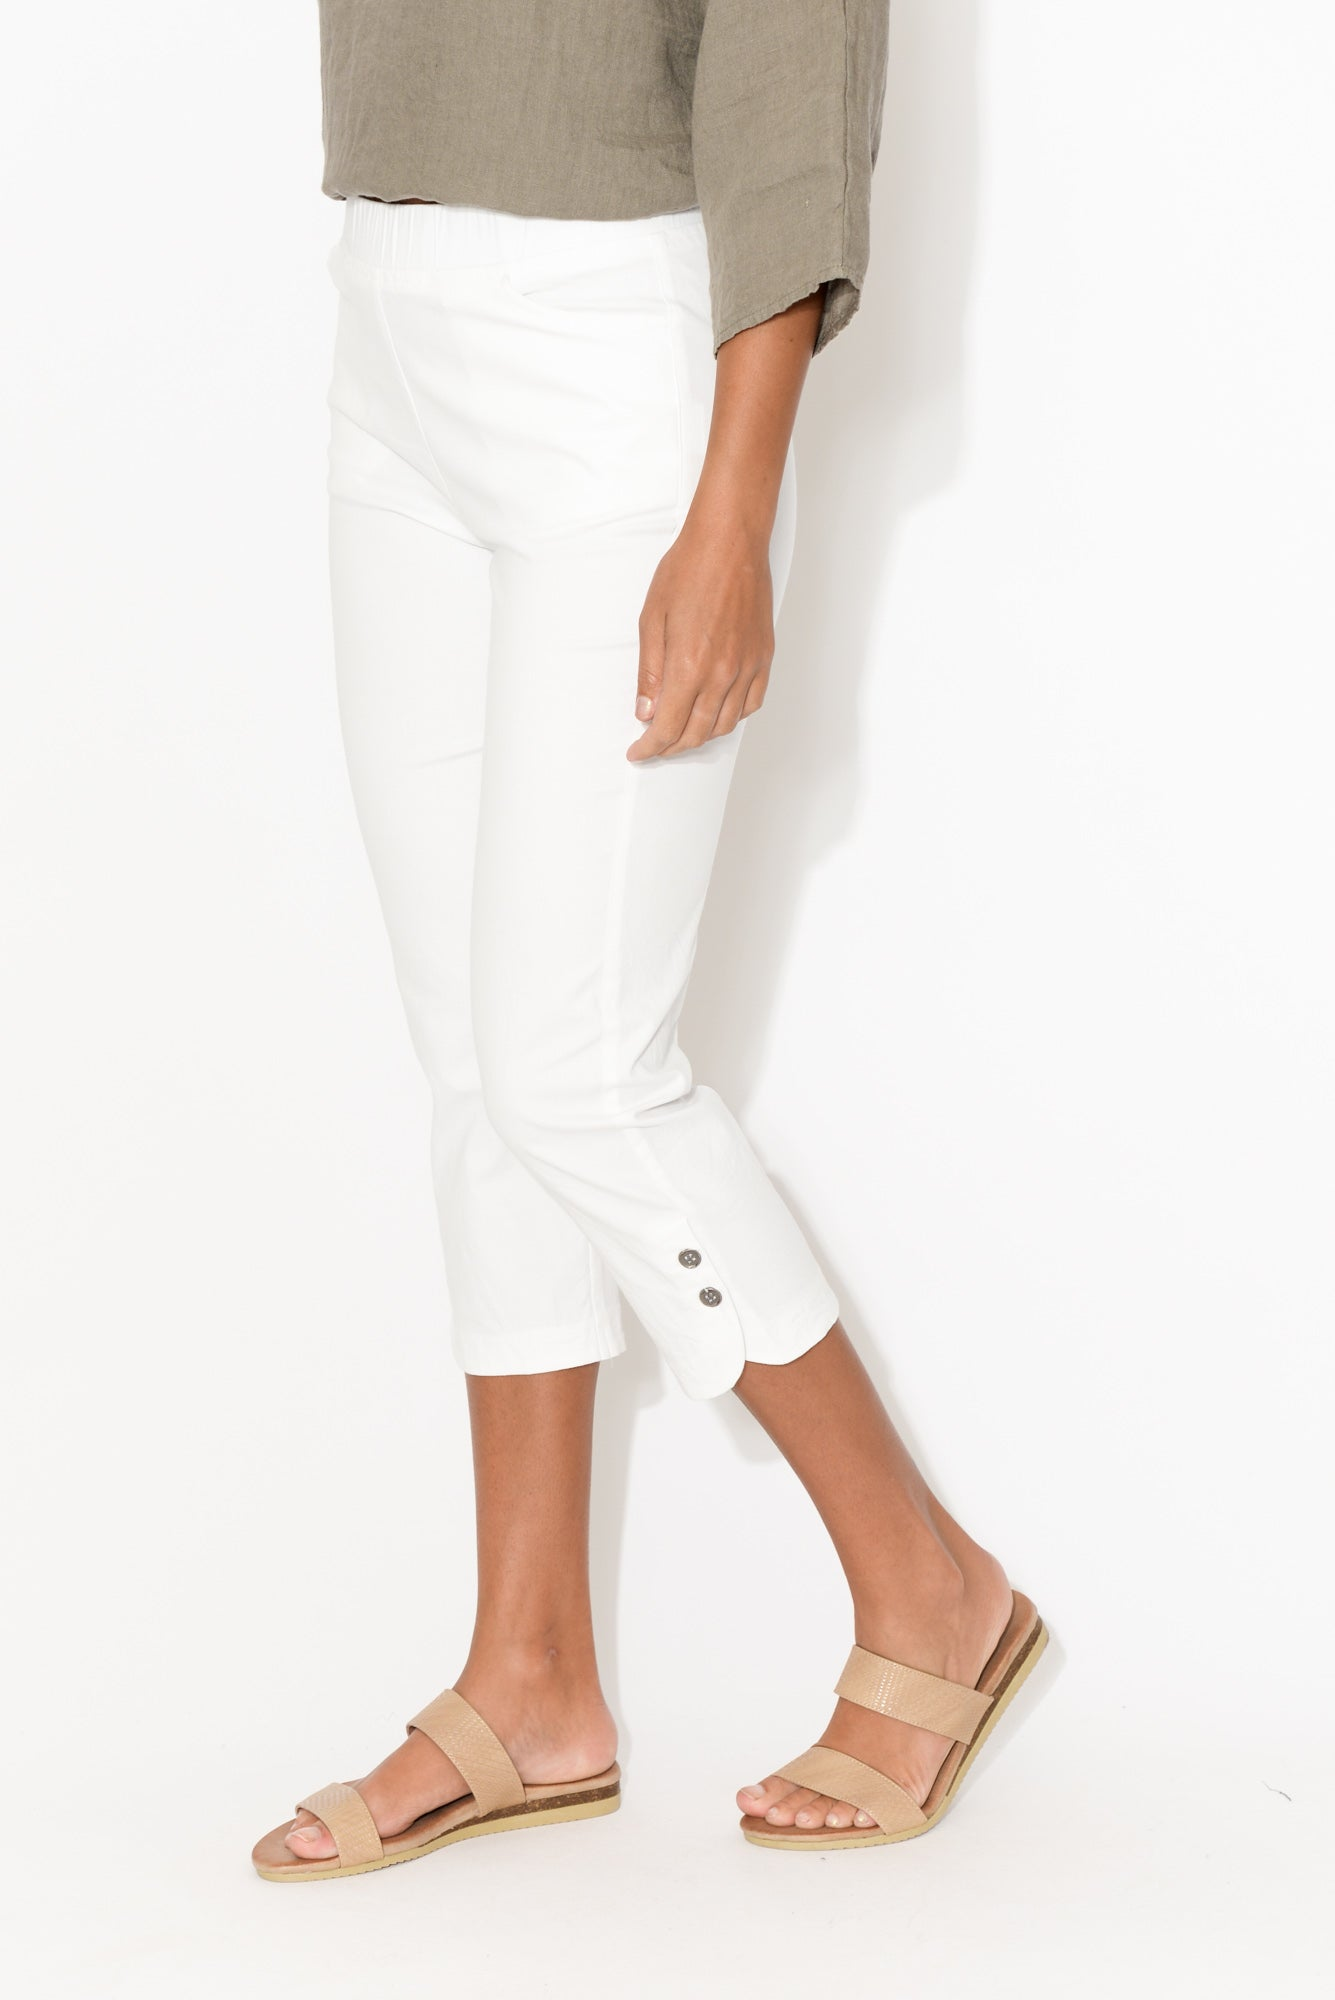 Kaia White Cropped Pant